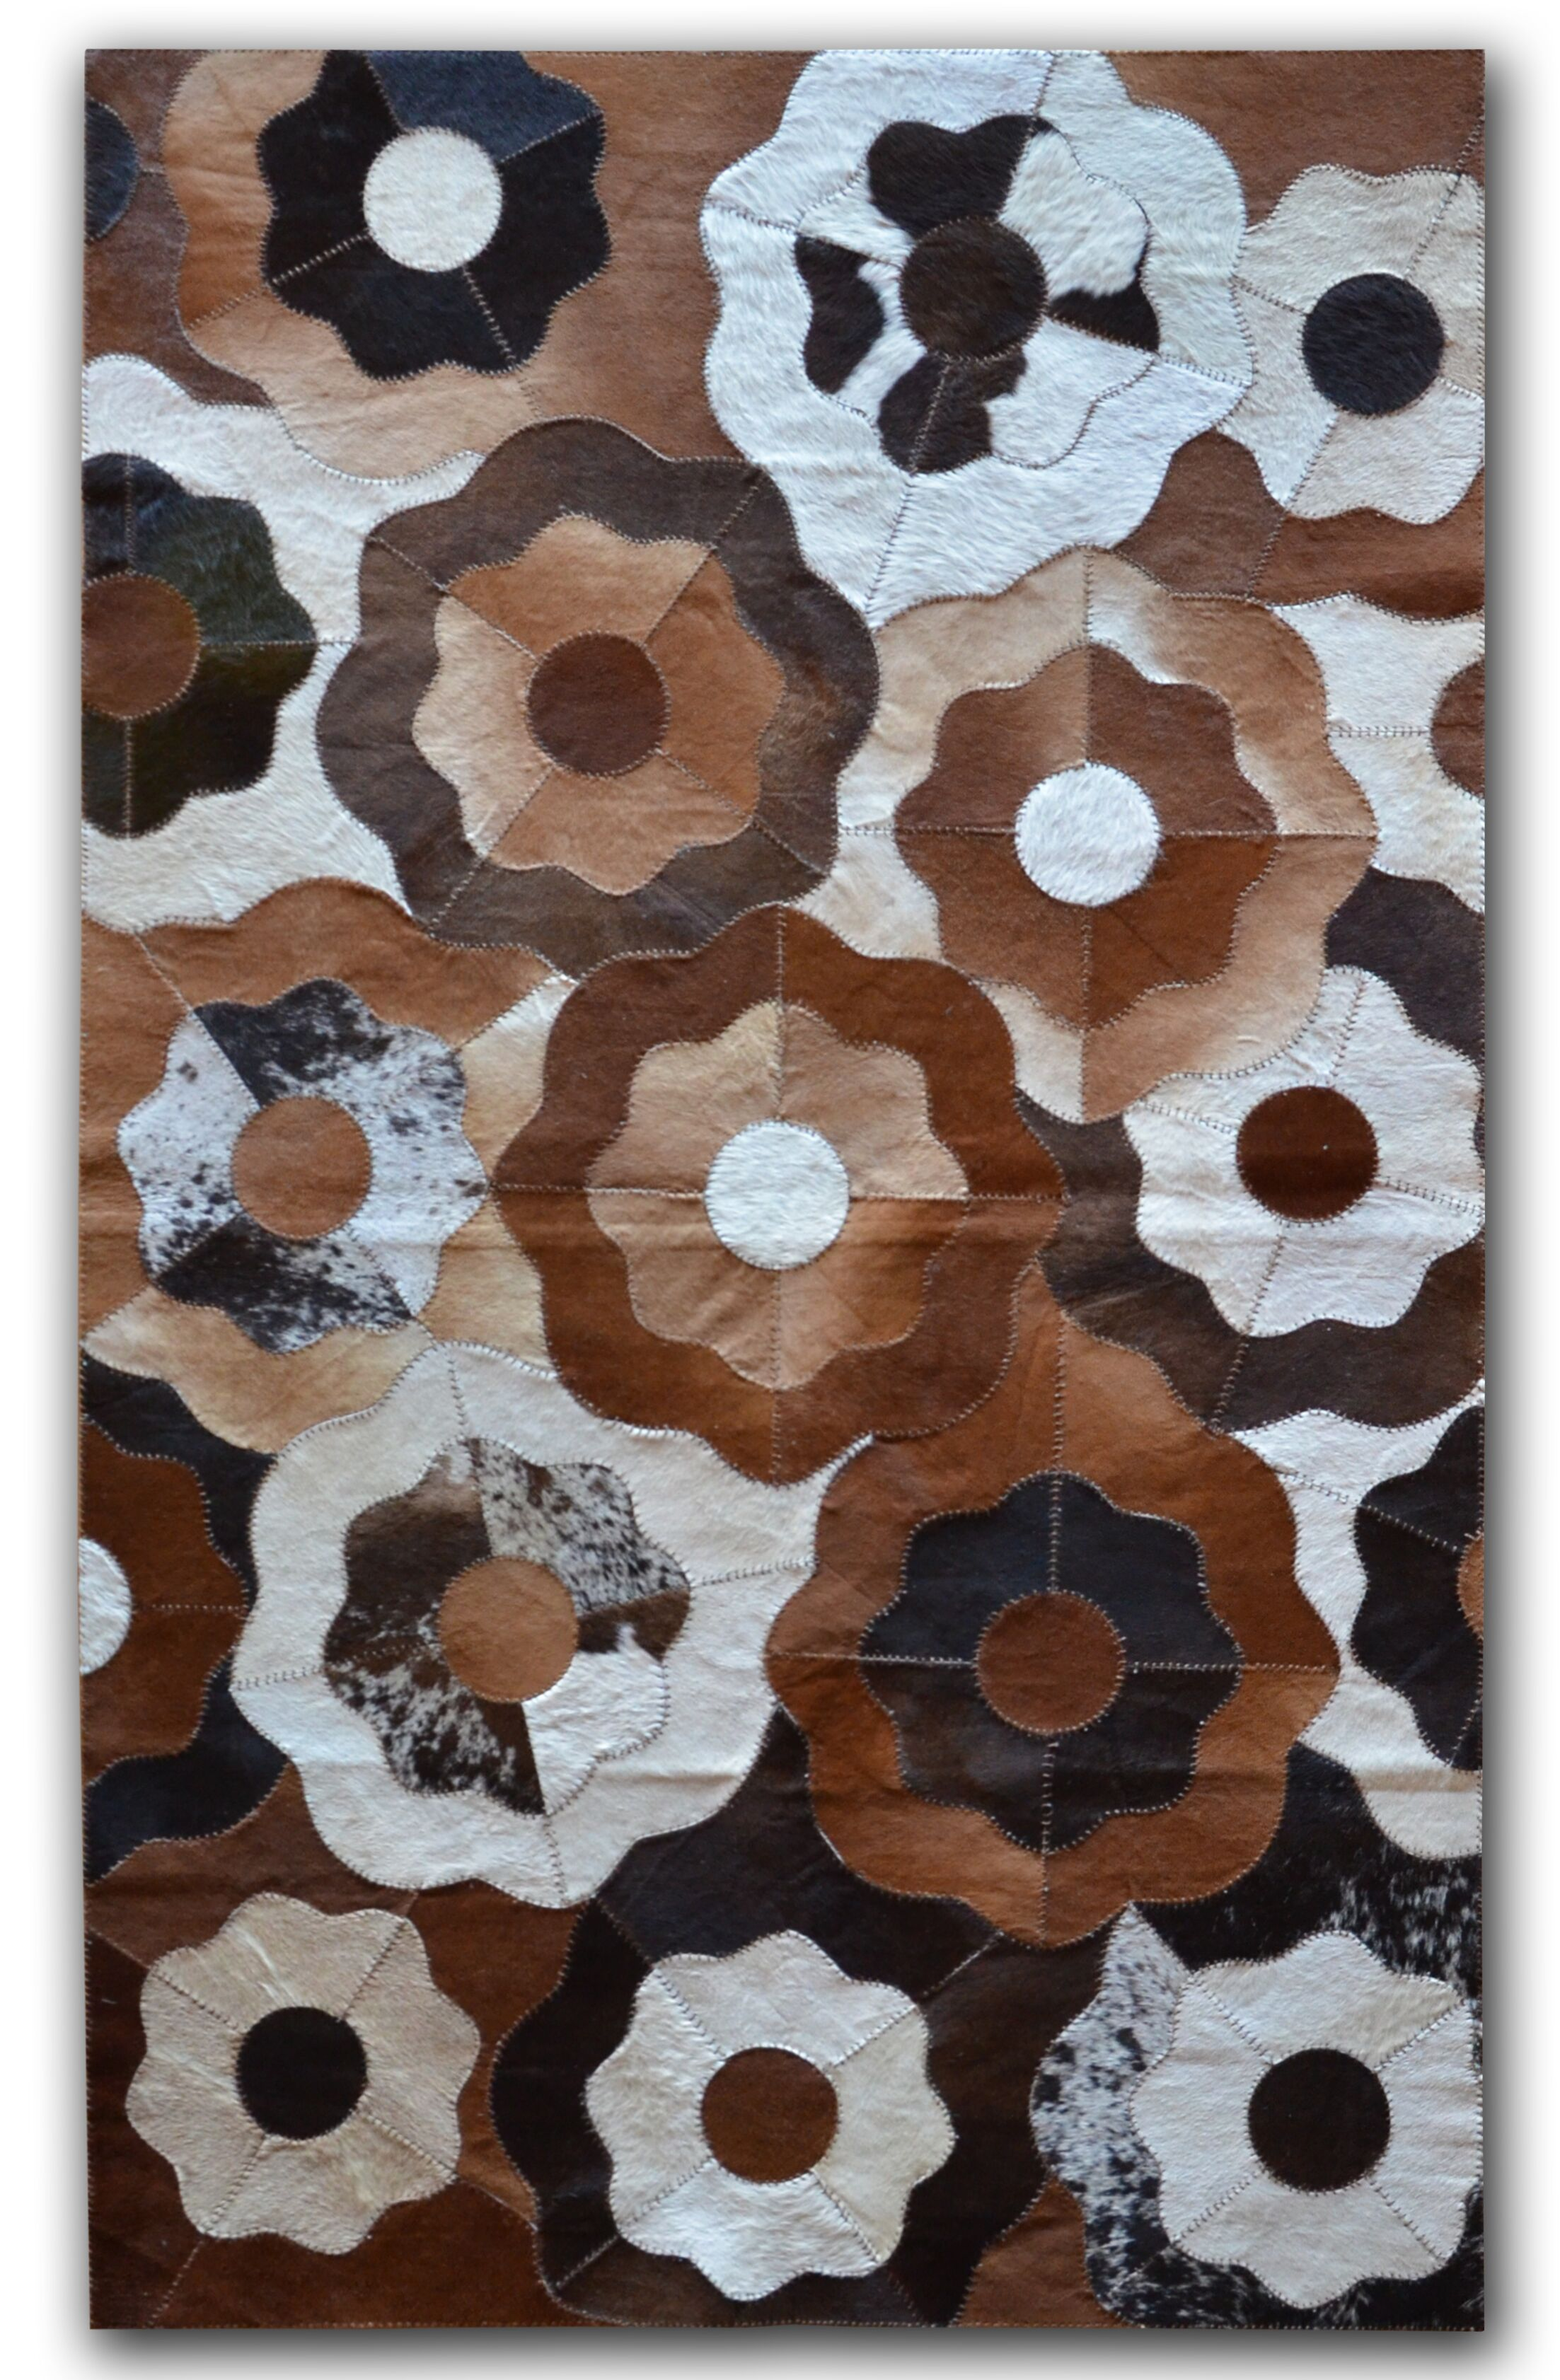 Creole Stitch Hand-Woven Cowhide Brown/Black Area Rug Rug Size: 8' x 10'